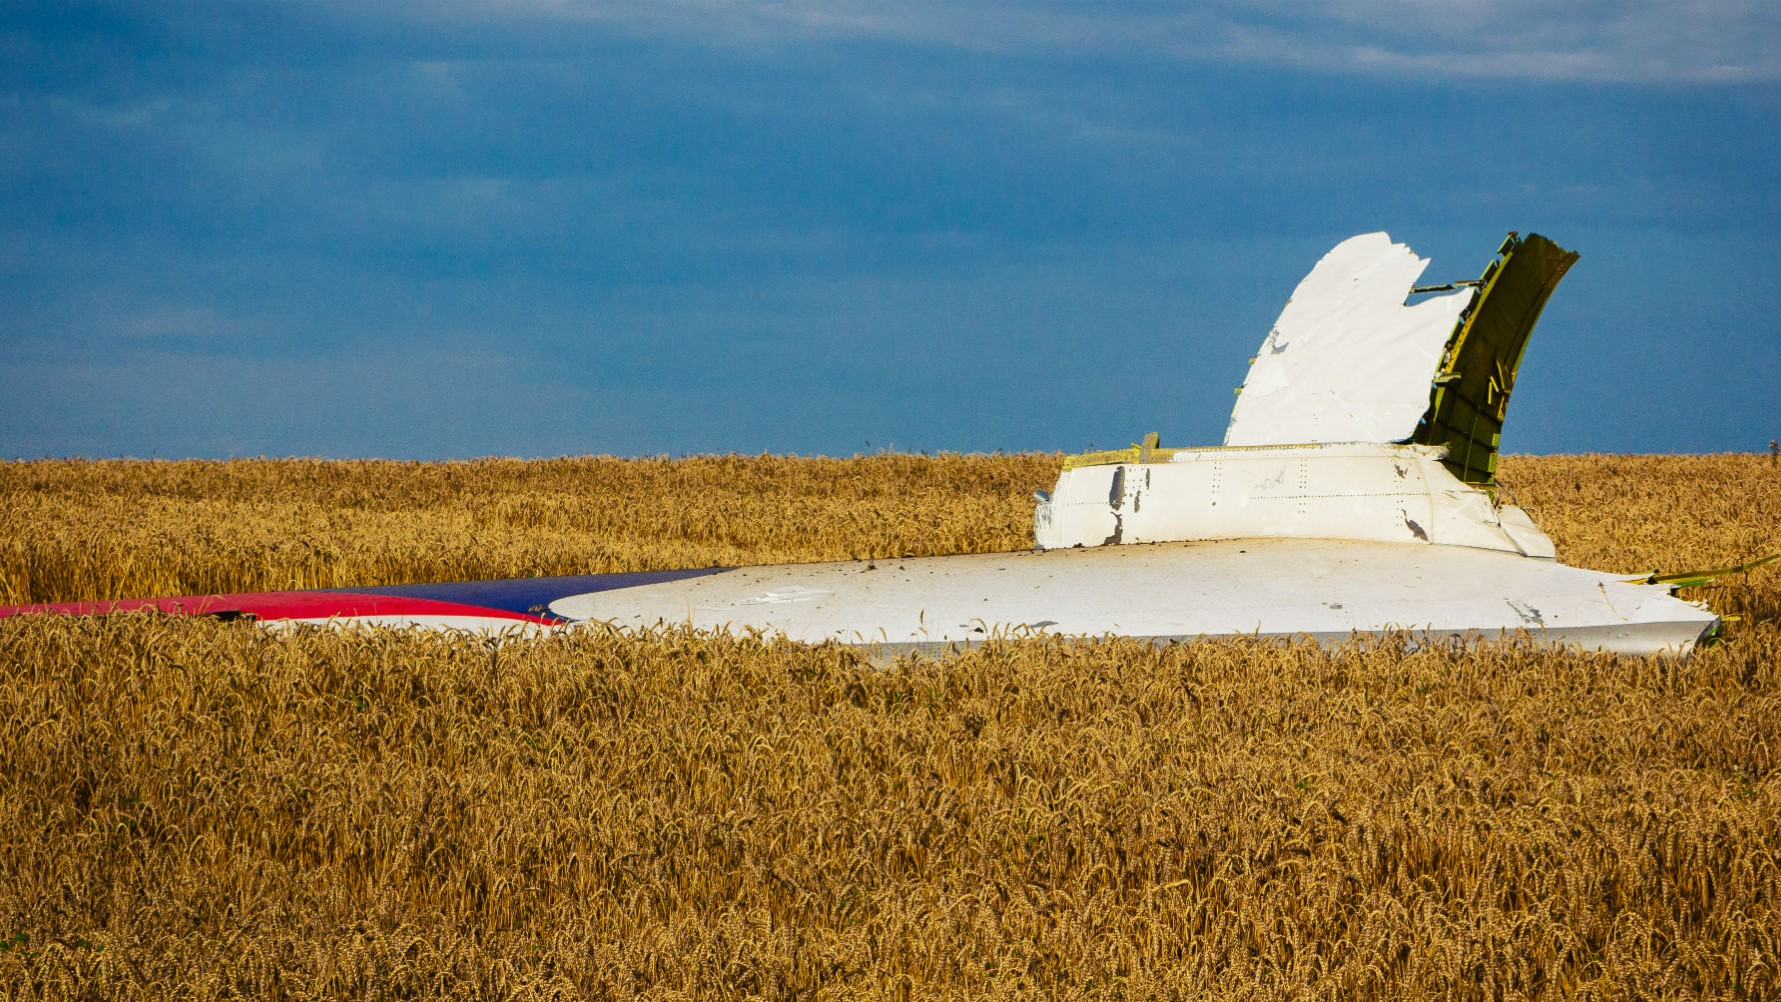 A Teen Hacker Is Targeting Russian Sites as Revenge for the MH17 Crash